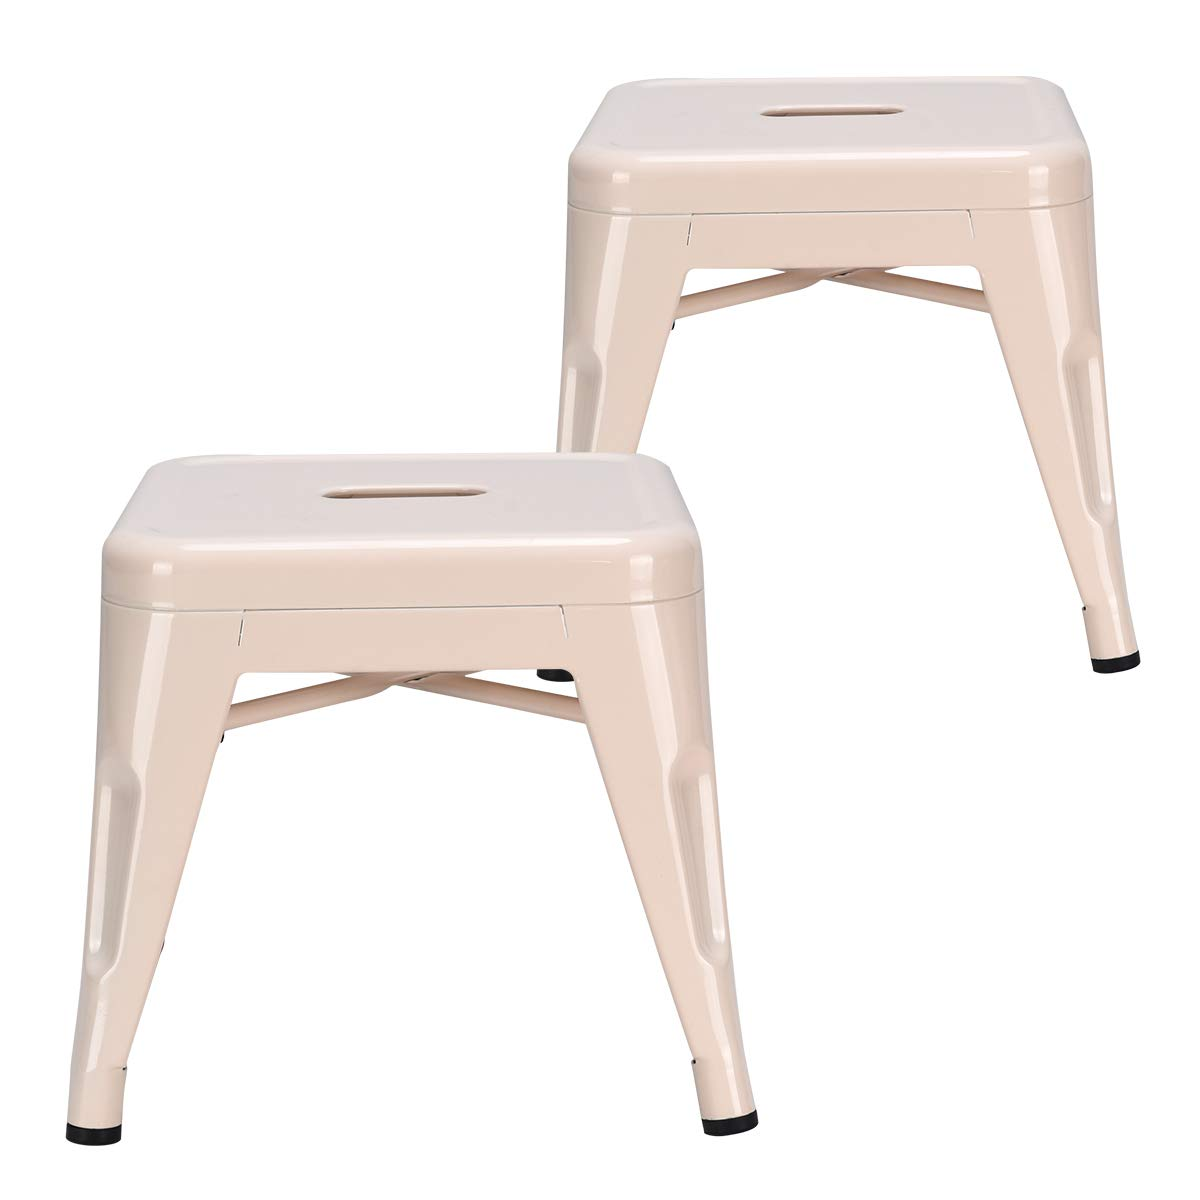 COSTWAY Kids Metal Stools Steel Barstools Vintage Antique Style Counter Bar Stool (Milky White, Set of 2) by COSTWAY